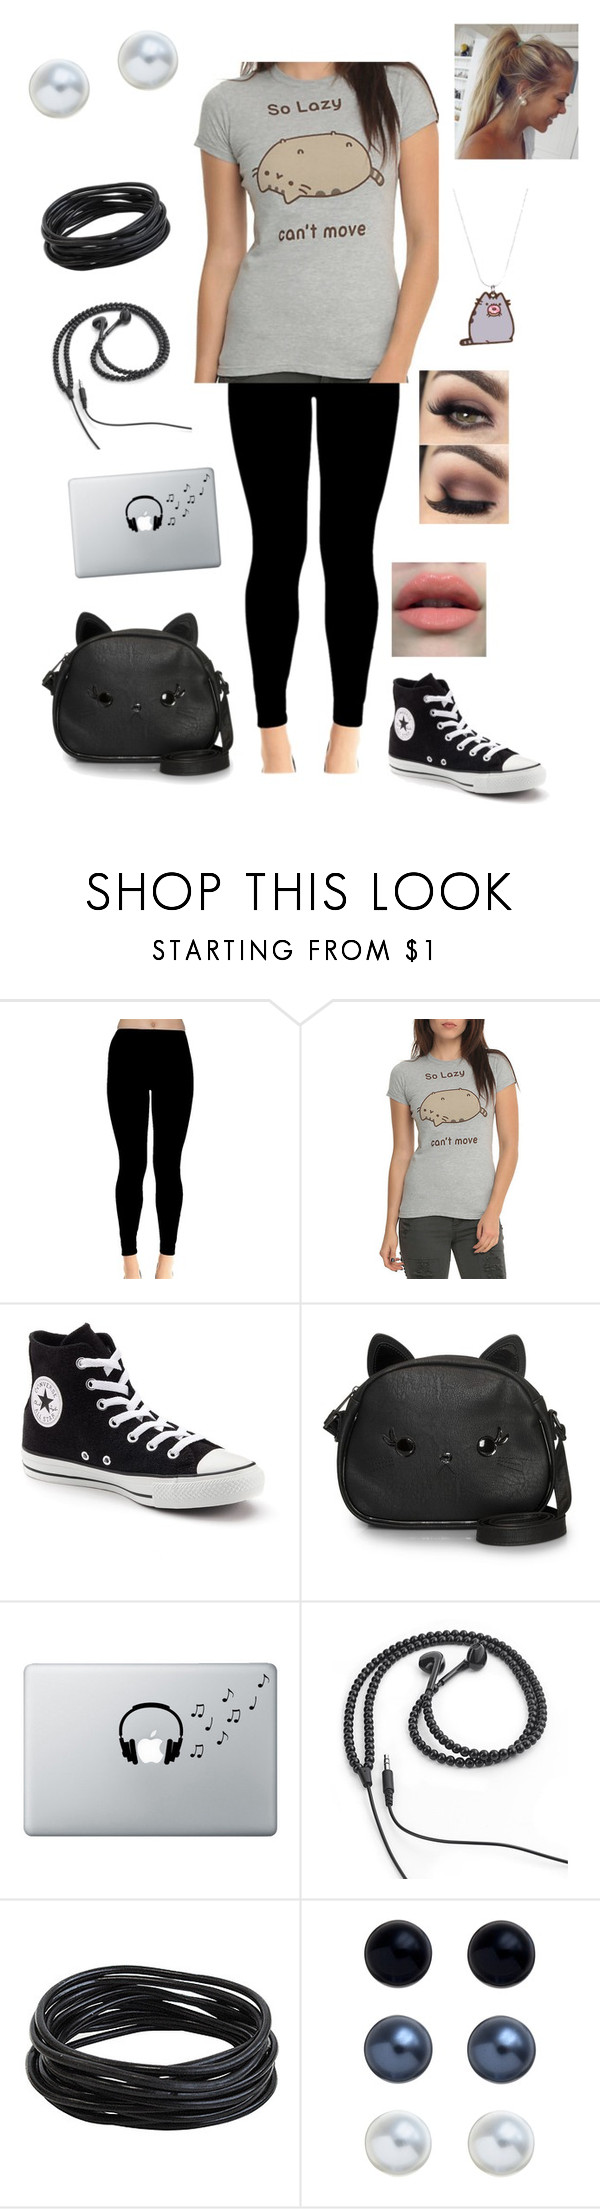 """""""Untitled #985"""" by cutiepie92343 ❤ liked on Polyvore featuring Converse, Loungefly, Music Notes, Kikkerland and John Lewis"""